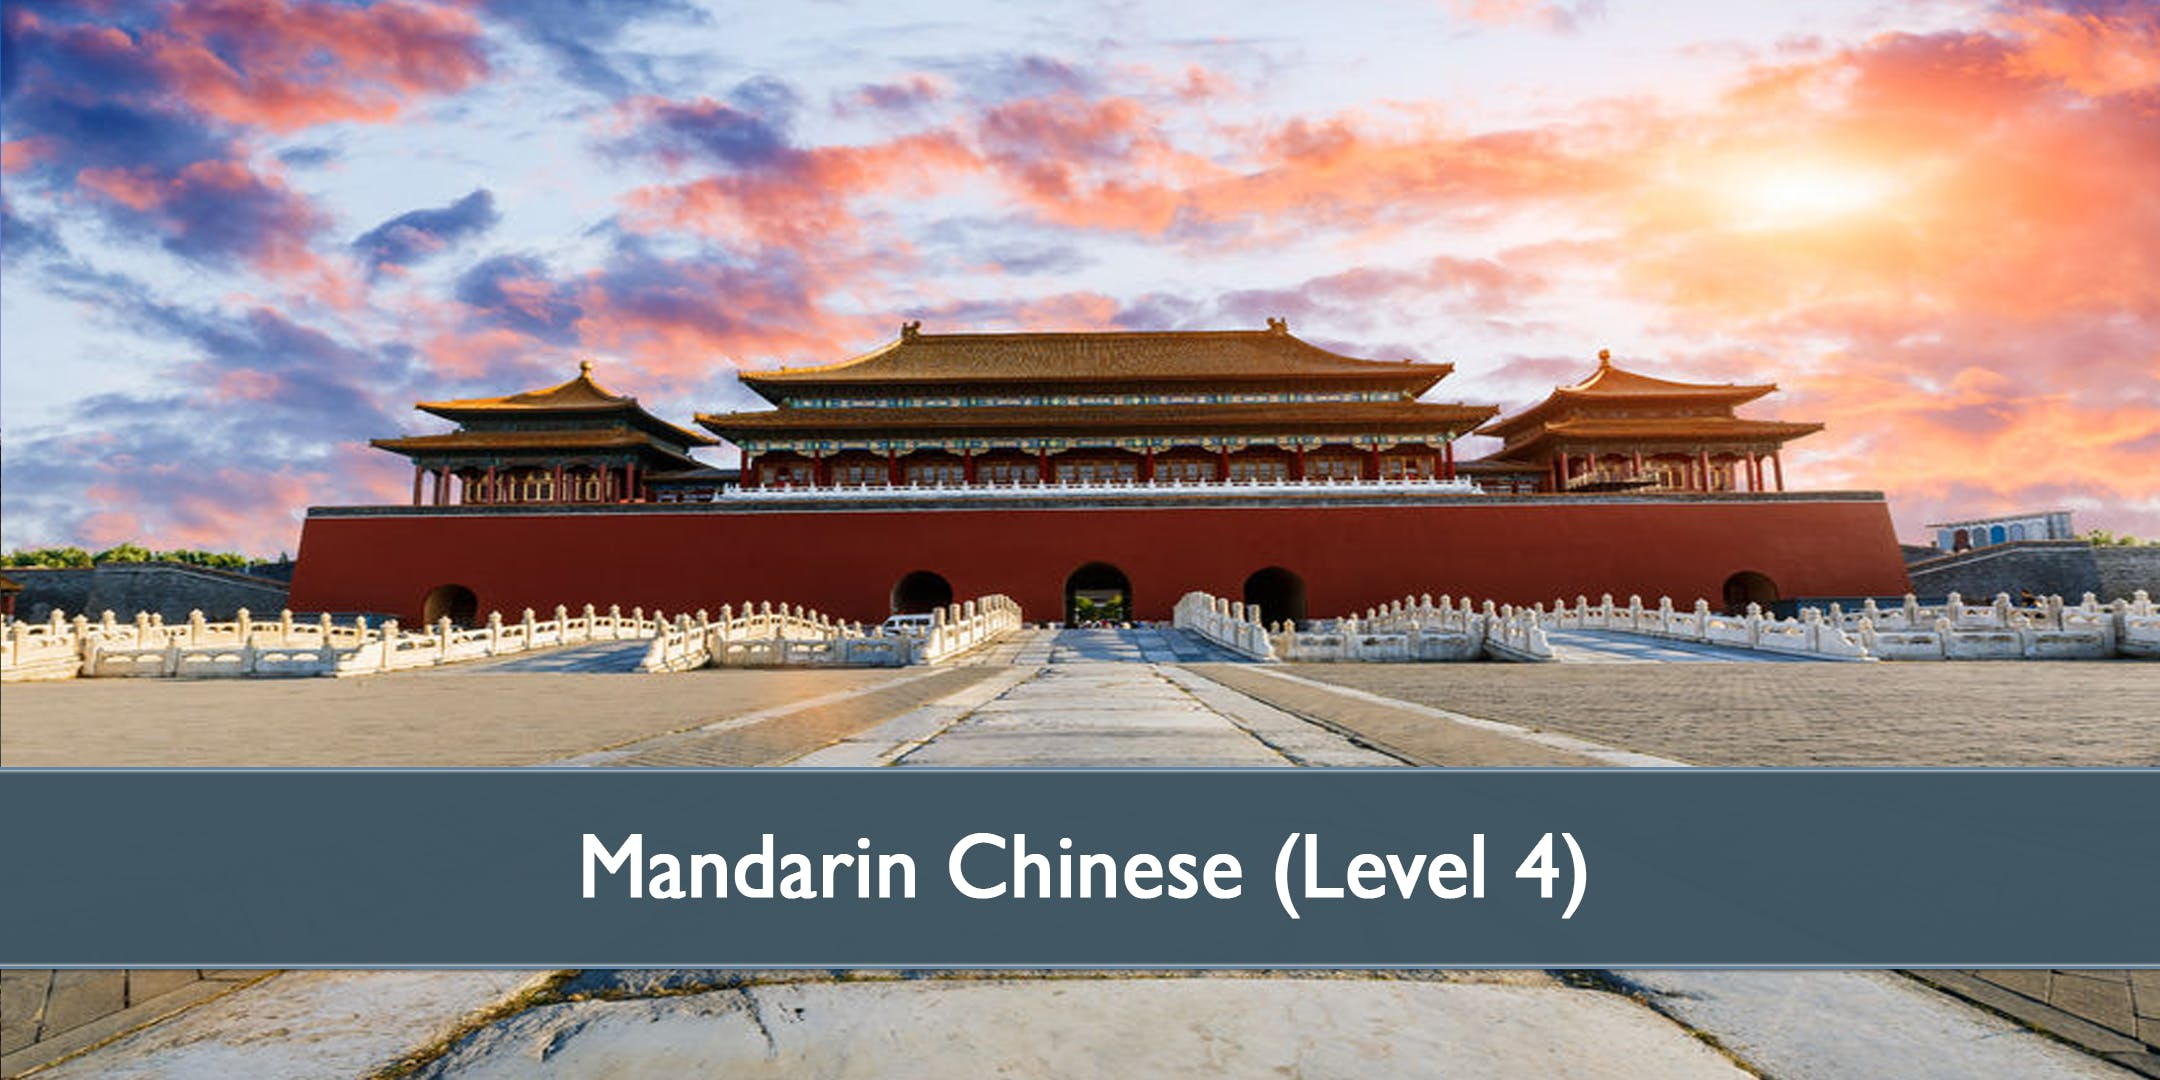 Mandarin Chinese (Level 4) - January 2019